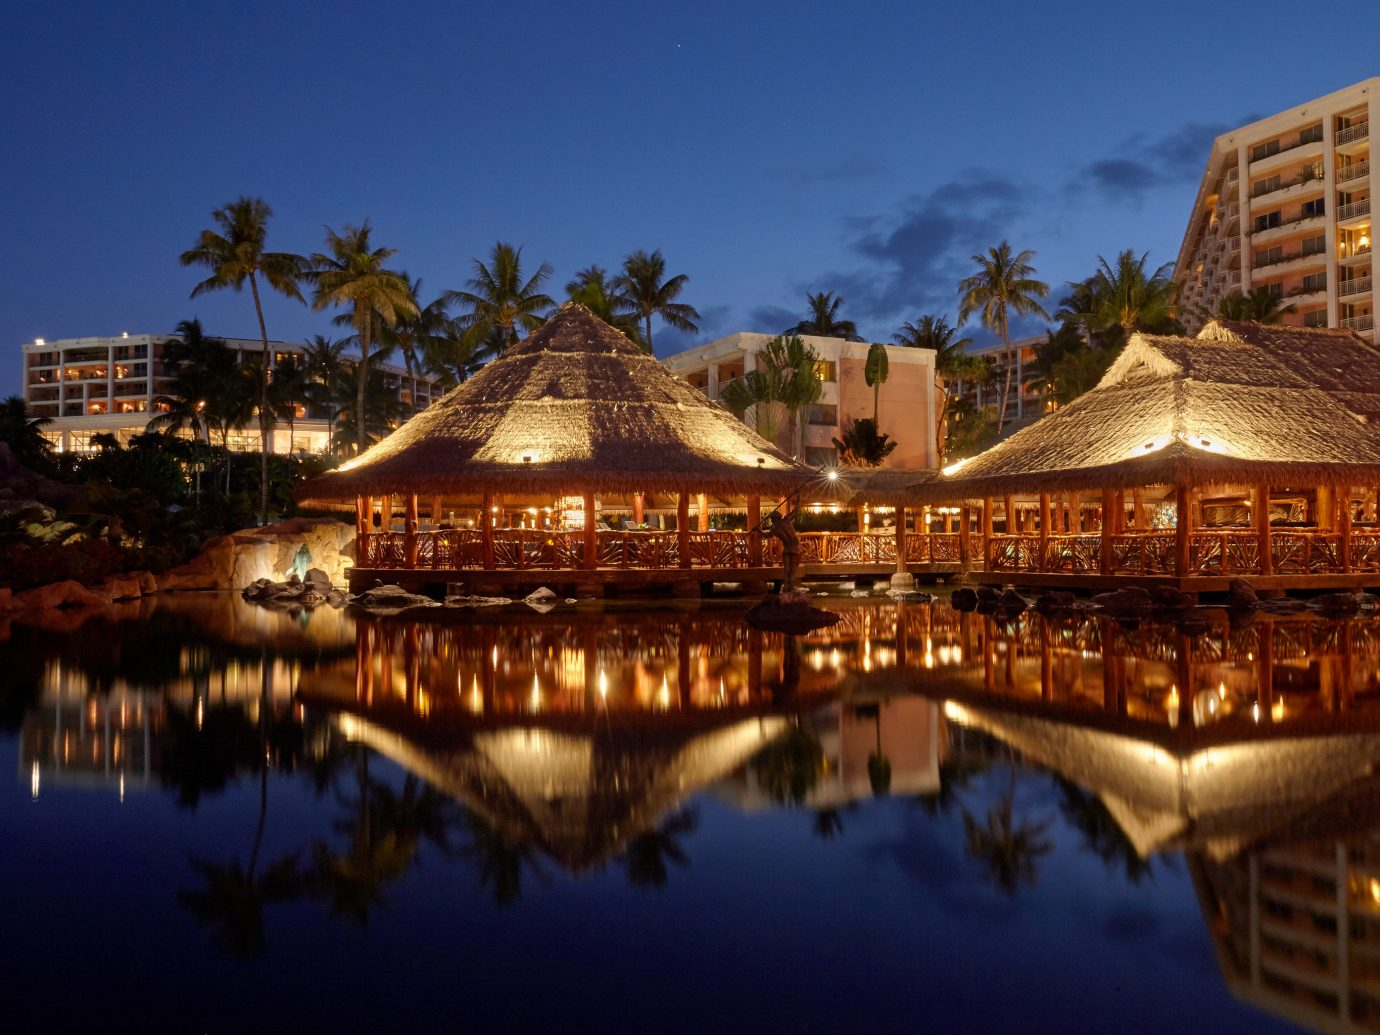 Beach Boutique Hotels Hotels Luxury Travel Trip Ideas outdoor building sky reflection water landmark Resort tourist attraction night evening lighting tourism City temple cityscape hotel computer wallpaper dusk leisure place of worship several